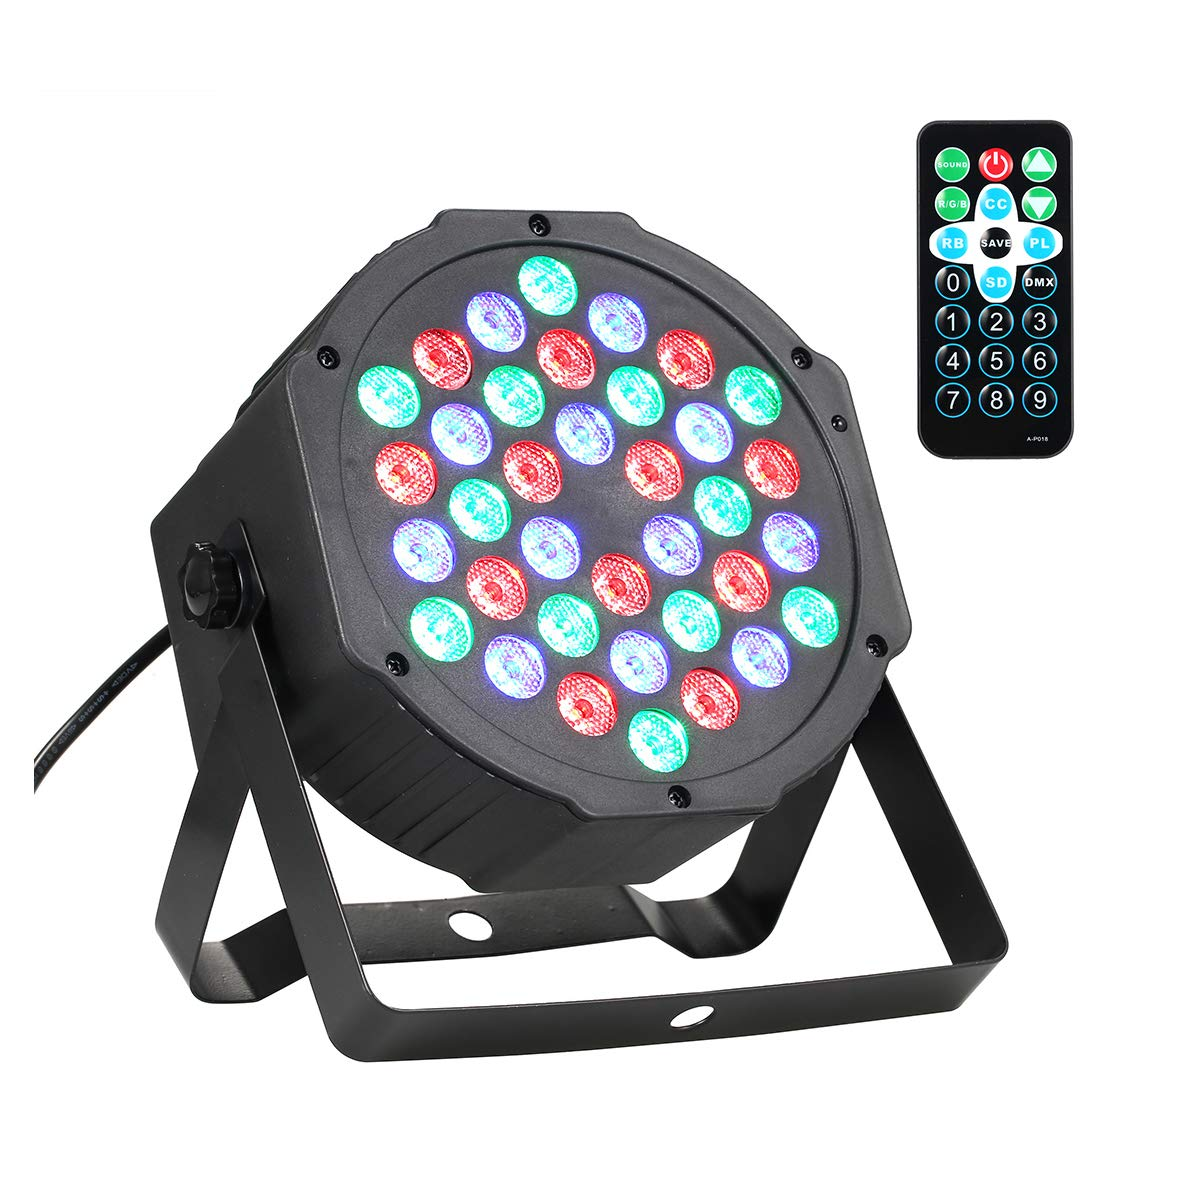 Lrifuer LED Stage Lights 36LED 36W Par Lights by Remote and DMX Control for Wedding Church Christmas party Halloween bar Stage Lighting (4PC) DMX512